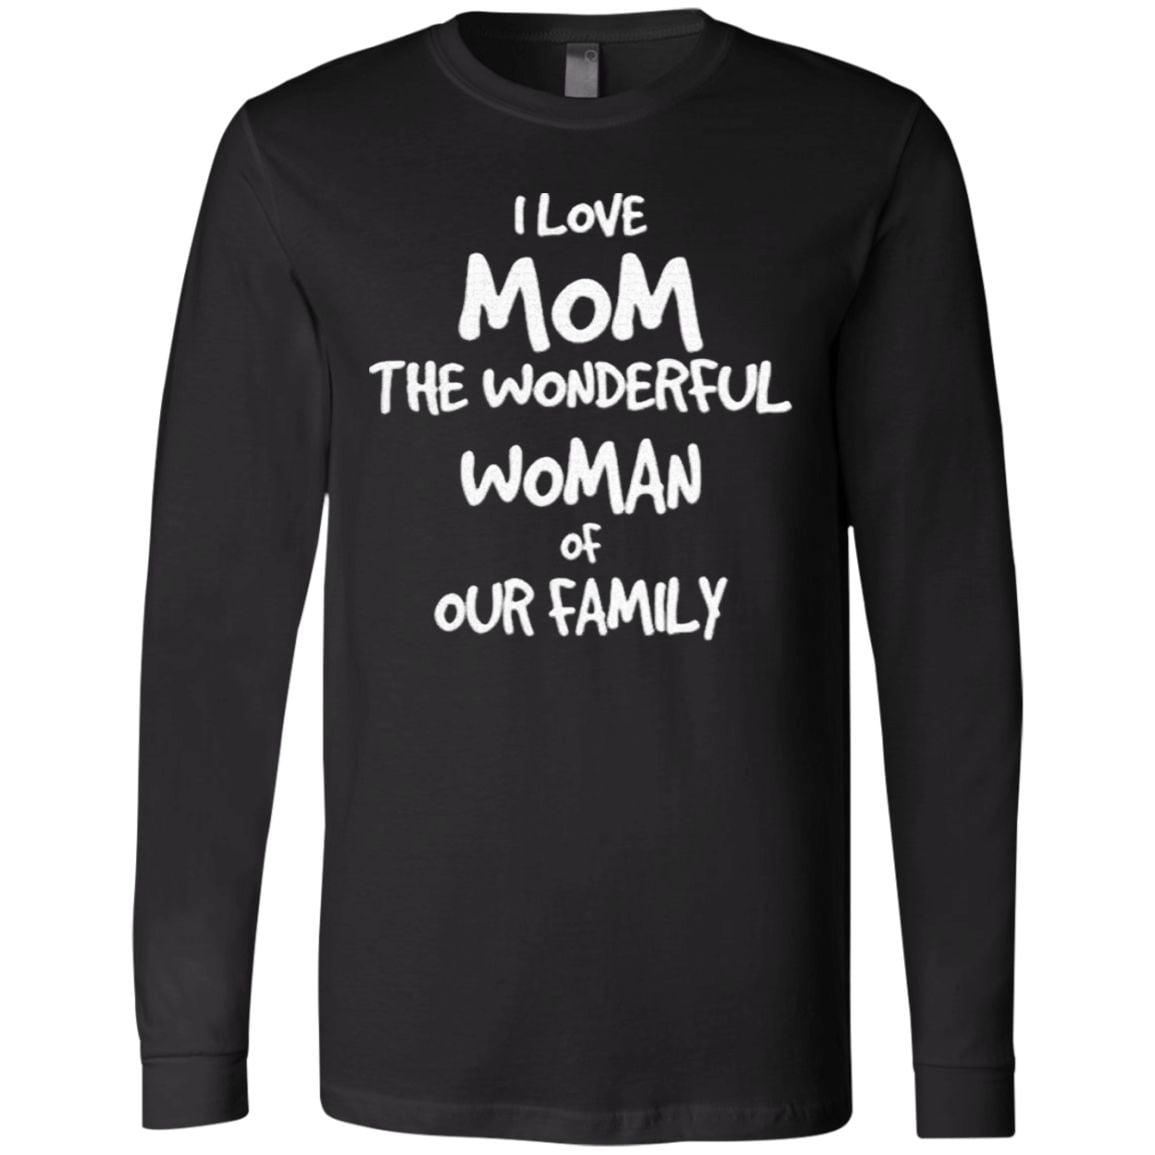 I love Mom the wonderful woman of our Family t shirt